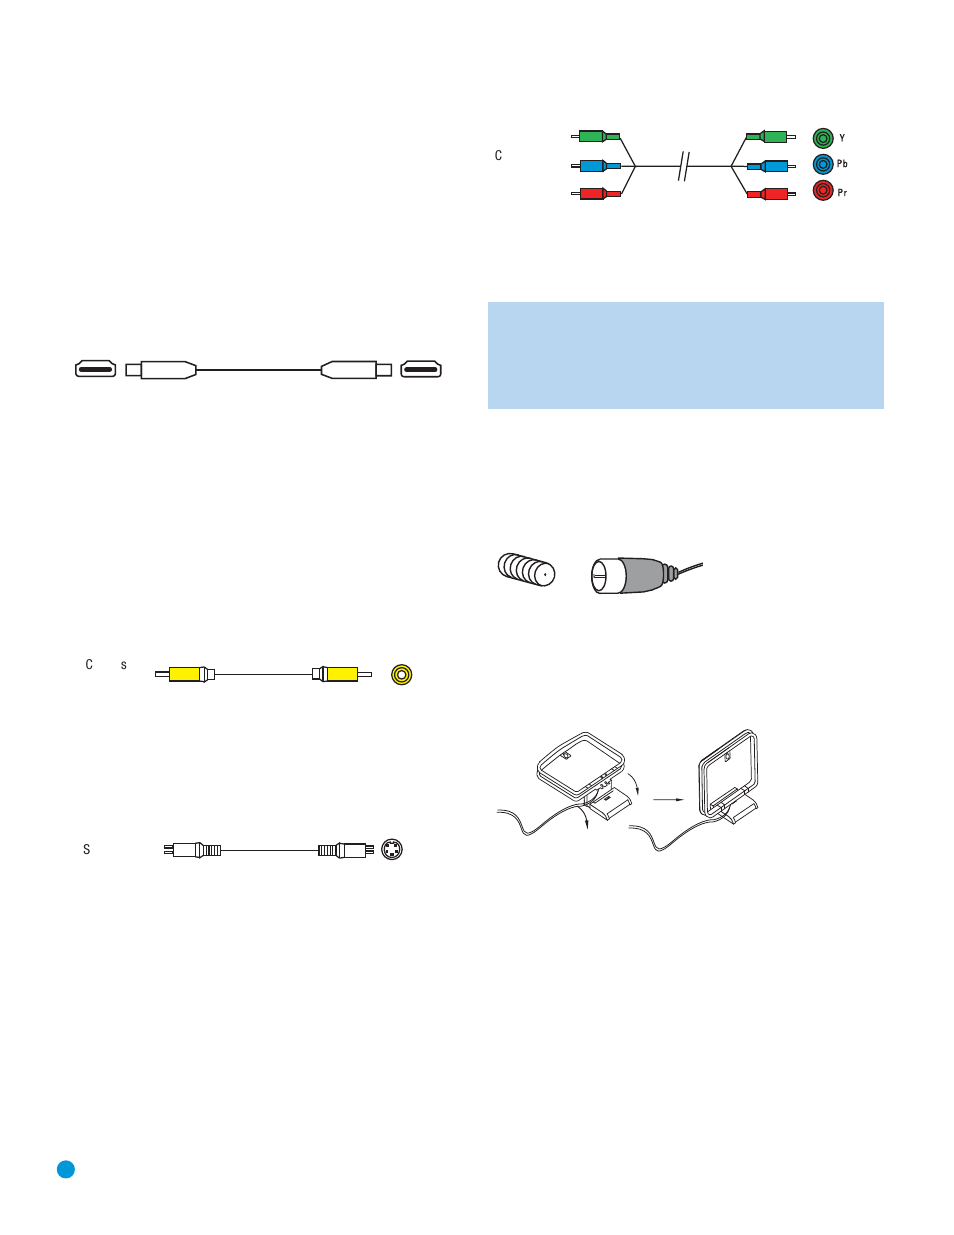 Connections, Antennas | Harman-Kardon AVR 154 User Manual